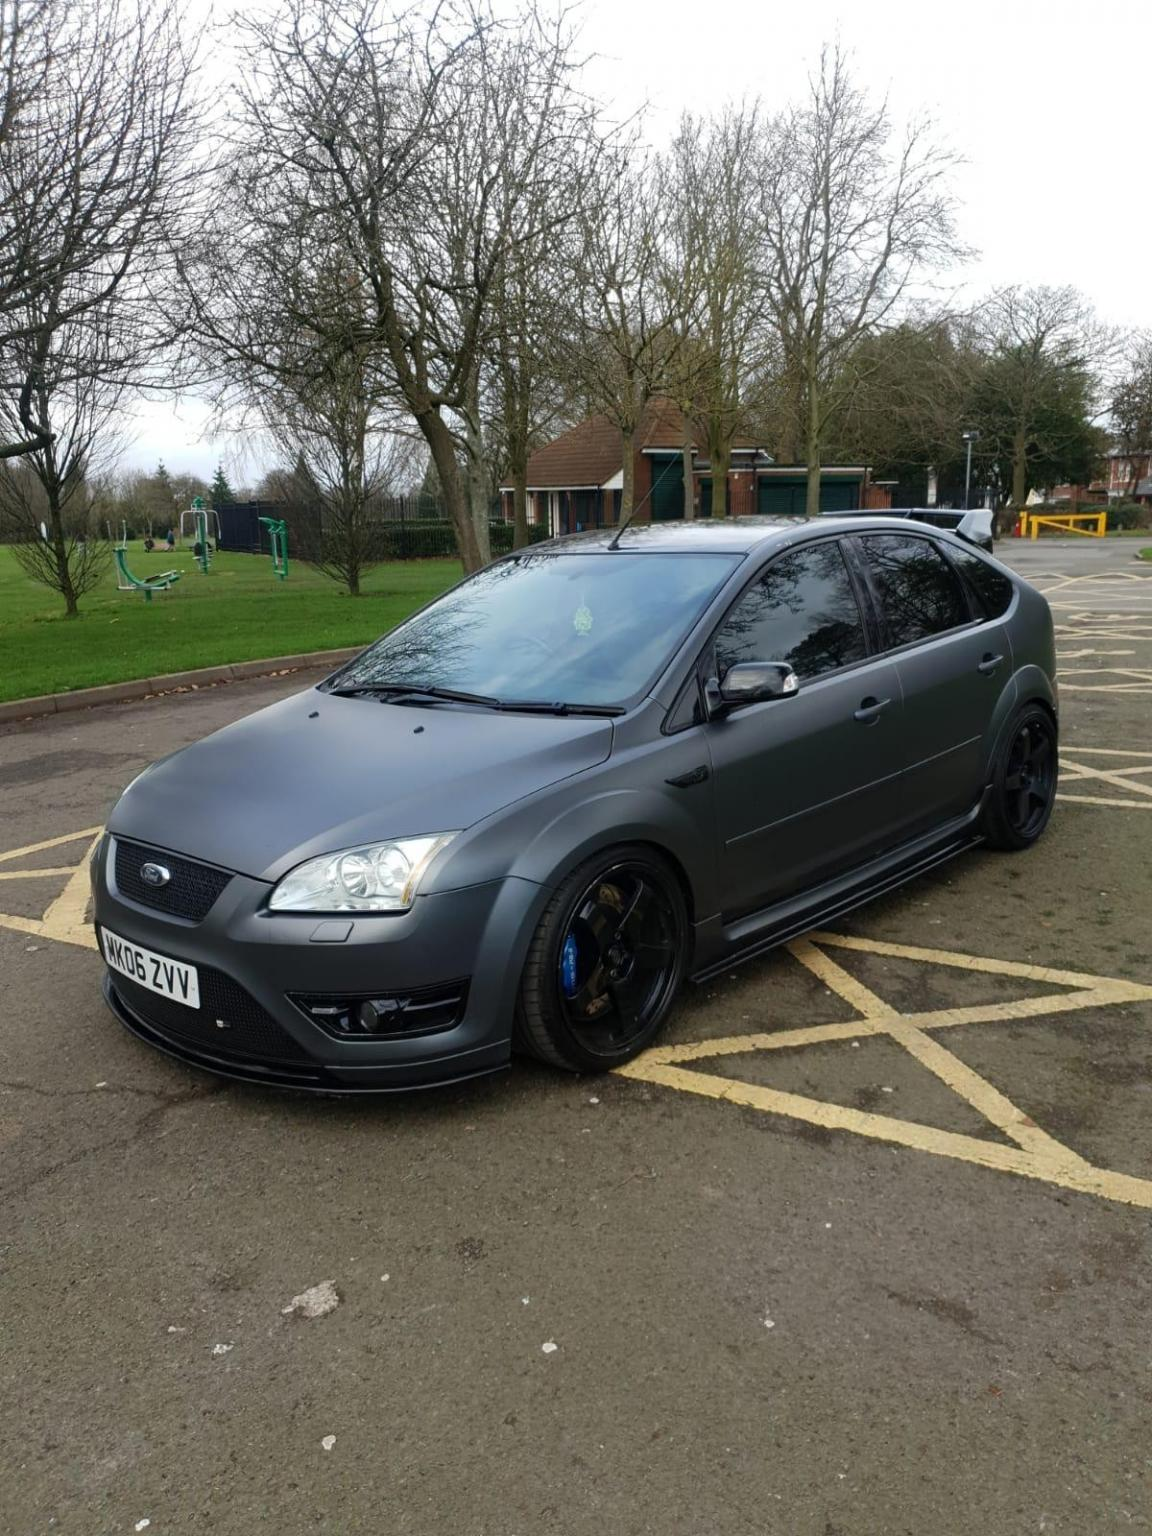 Ford Focus St In Ws2 Walsall For 5 000 00 For Sale Shpock